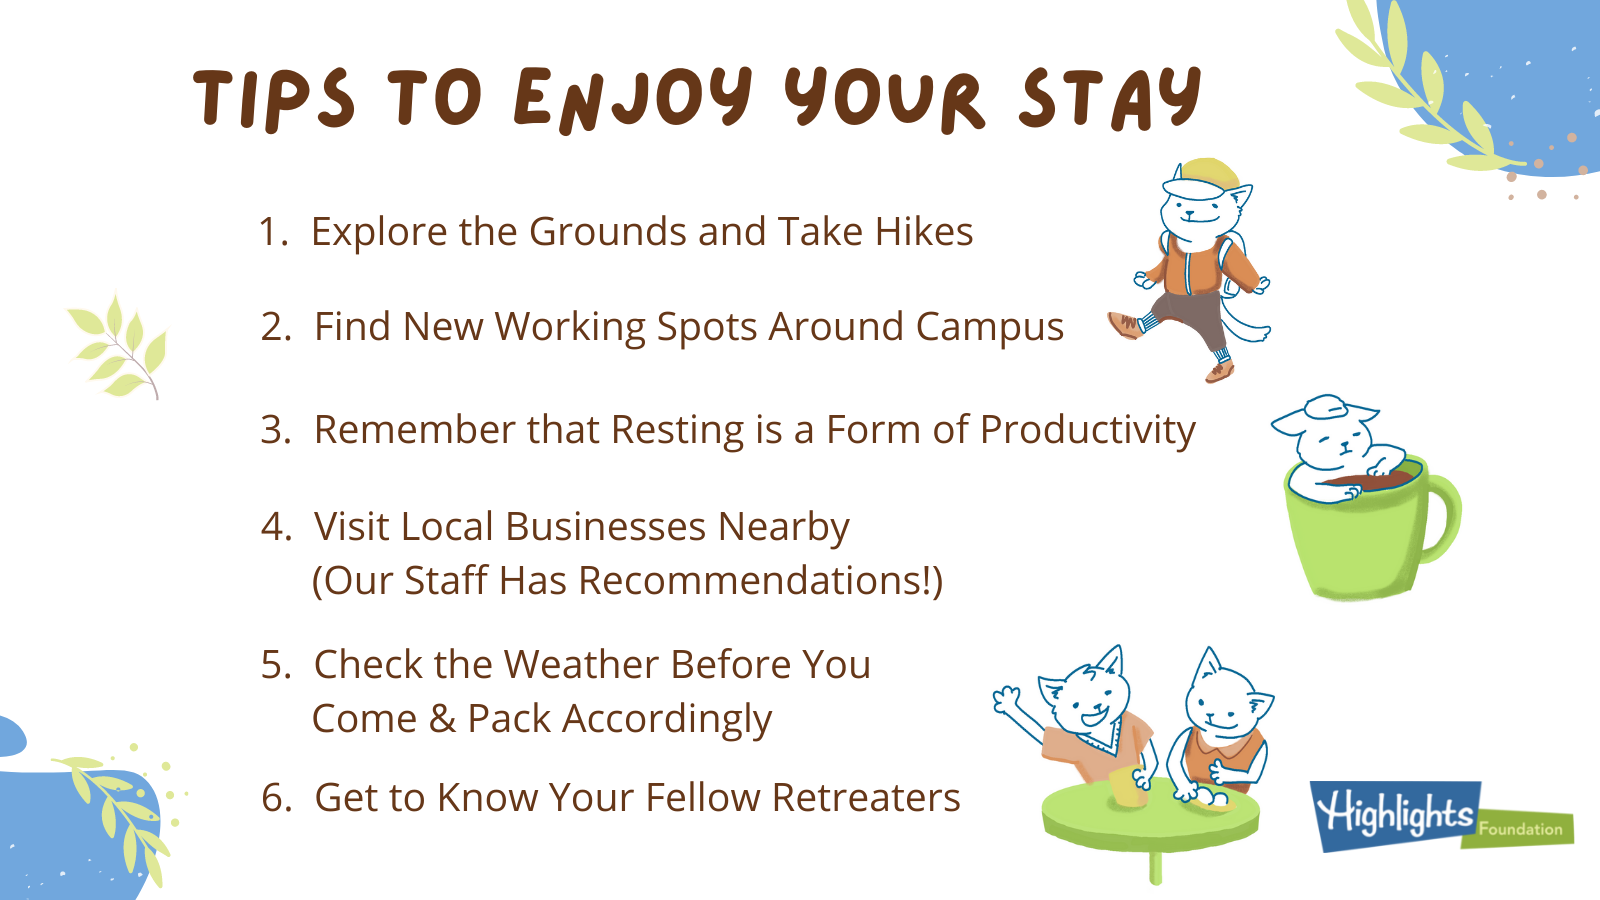 Tips to Enjoy Your Stay